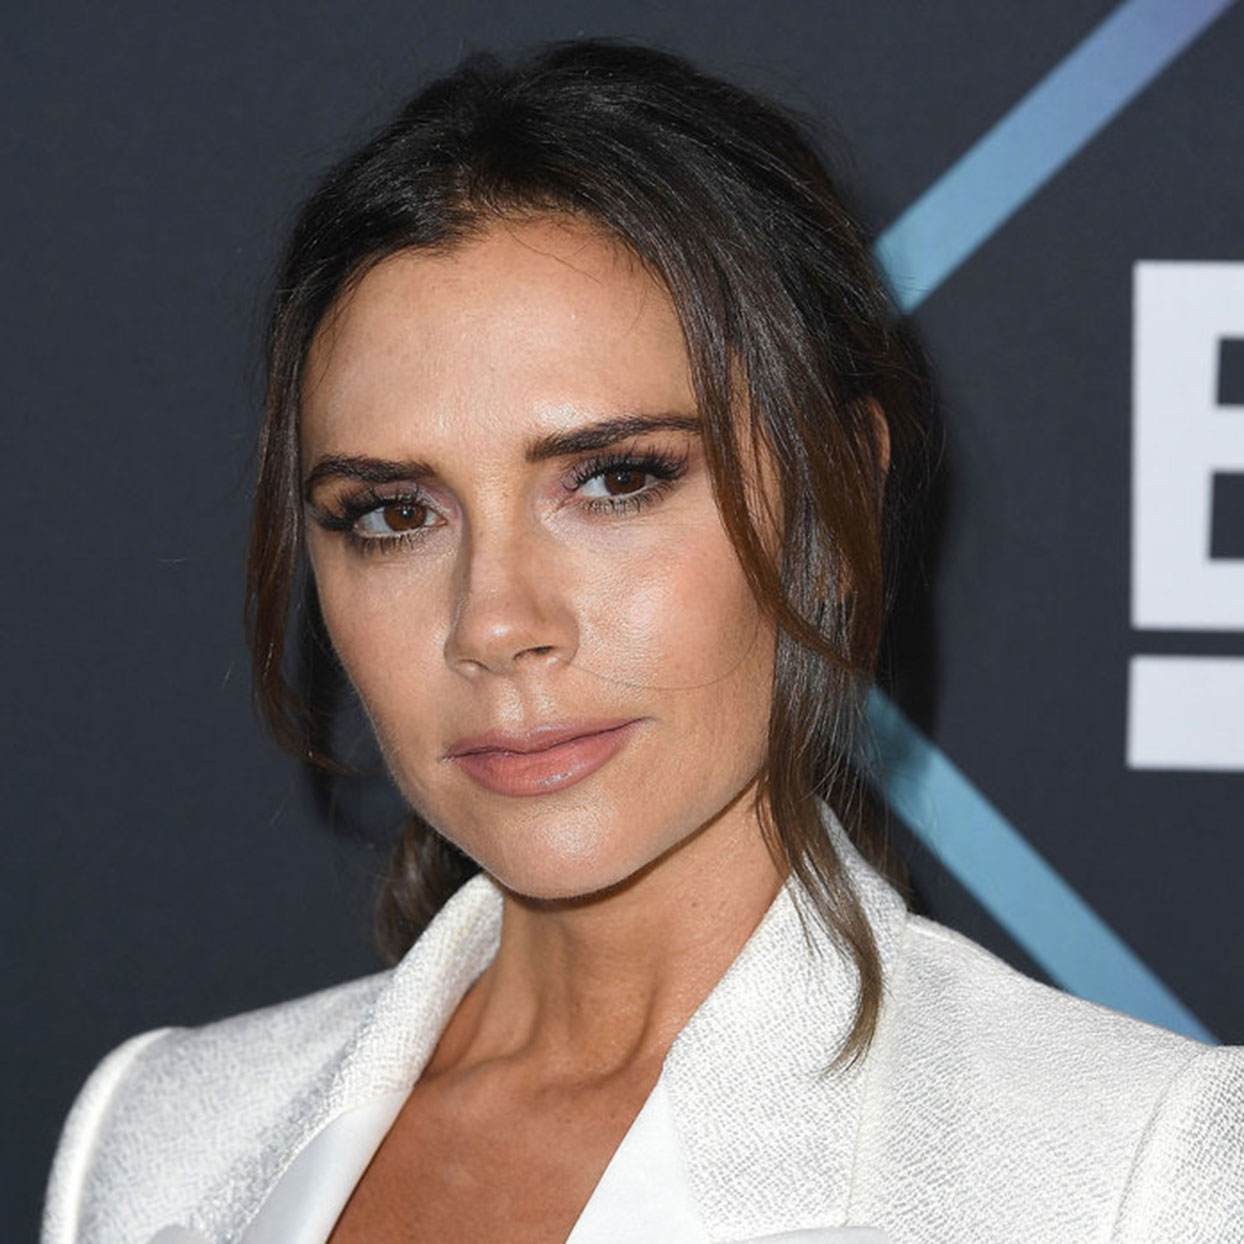 Victoria Beckham releases her first skincare product for her beauty brand.